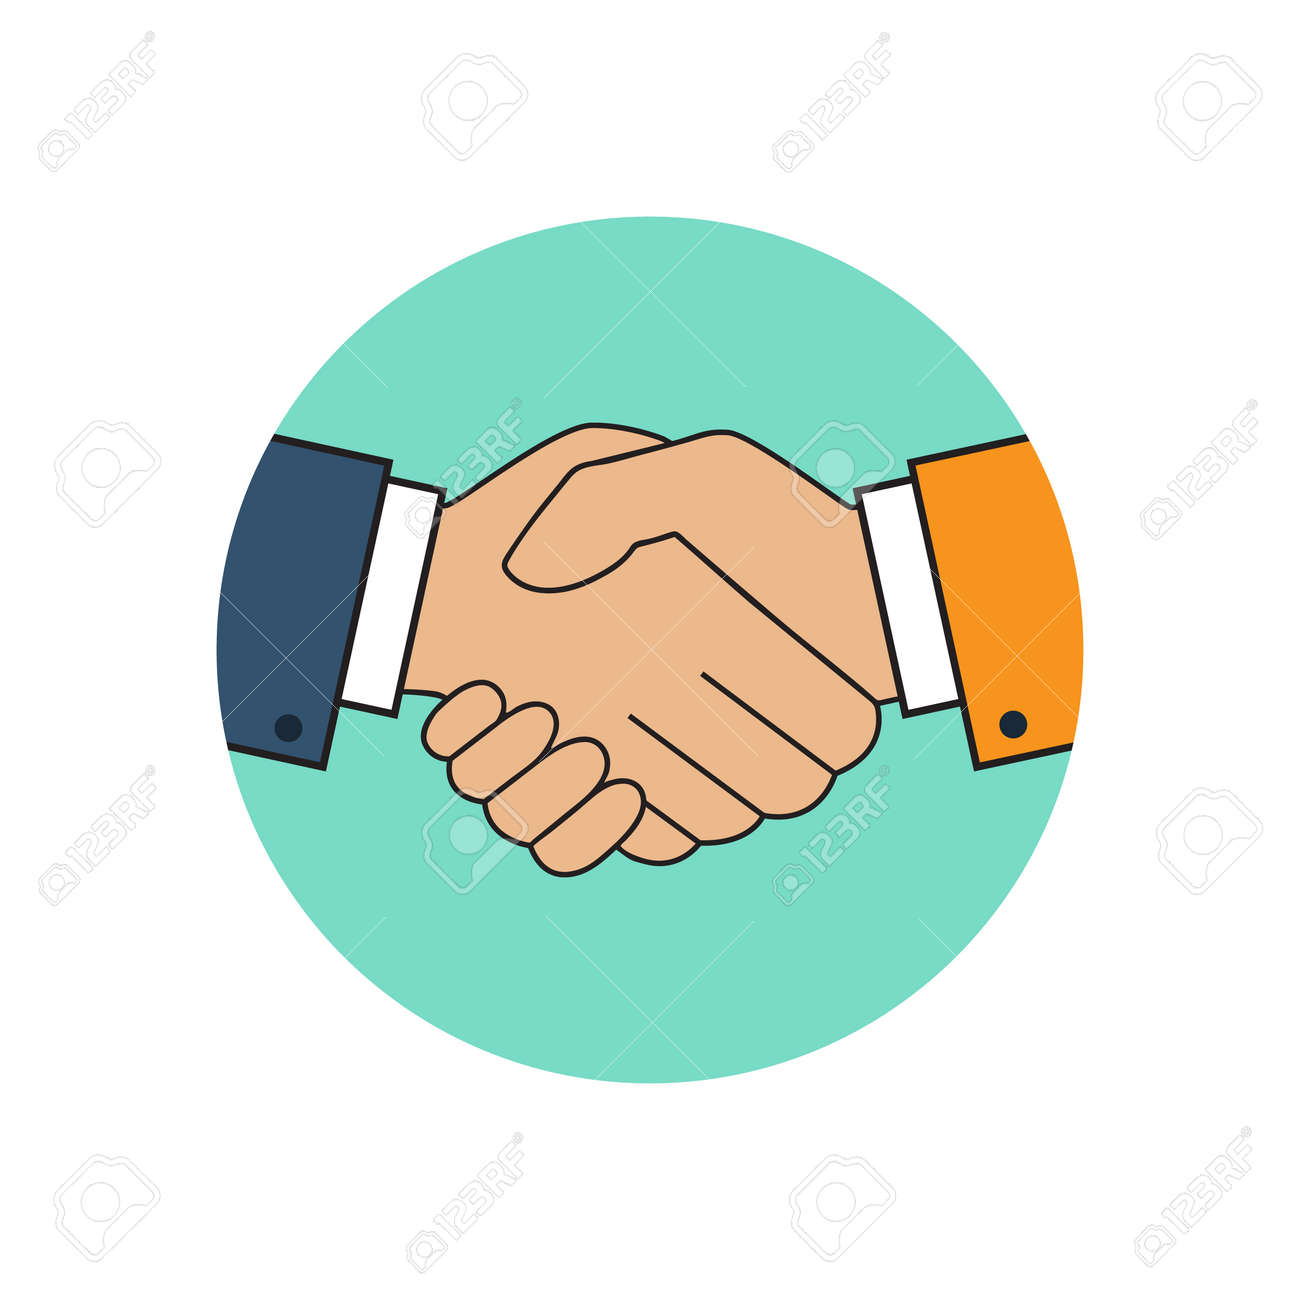 Handshake Icon Background For Business And Finance Symbol Of